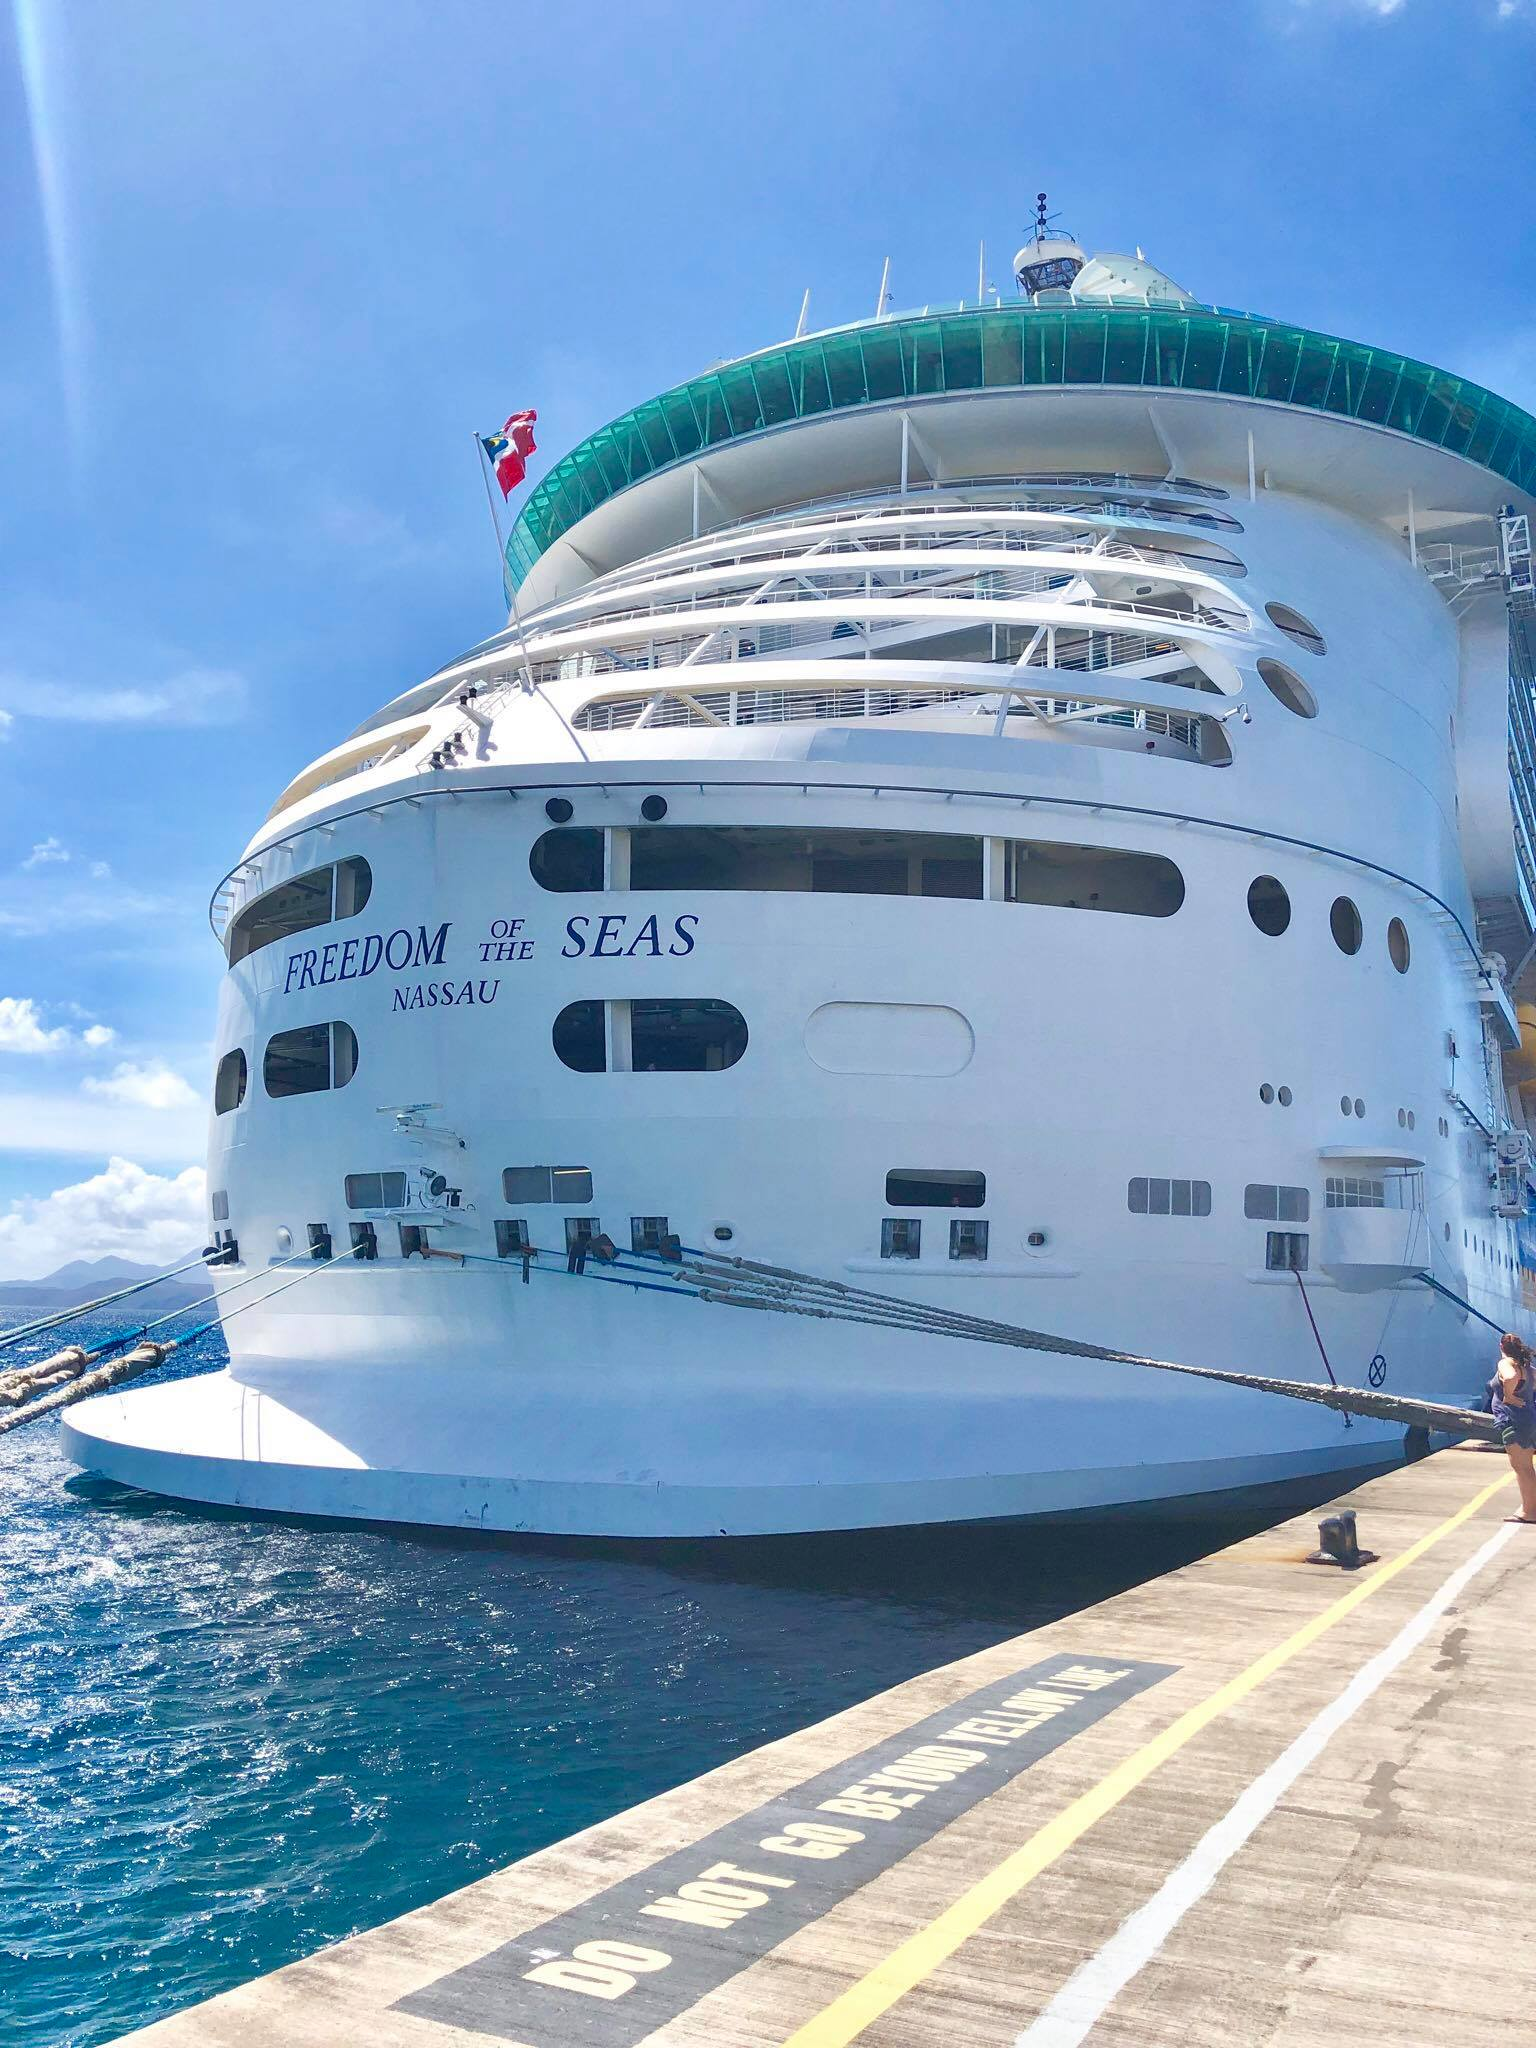 Kach Solo Travels in 2019  7-day Eastern & Southern Caribbean cruise with Royal Caribbean 11.jpg